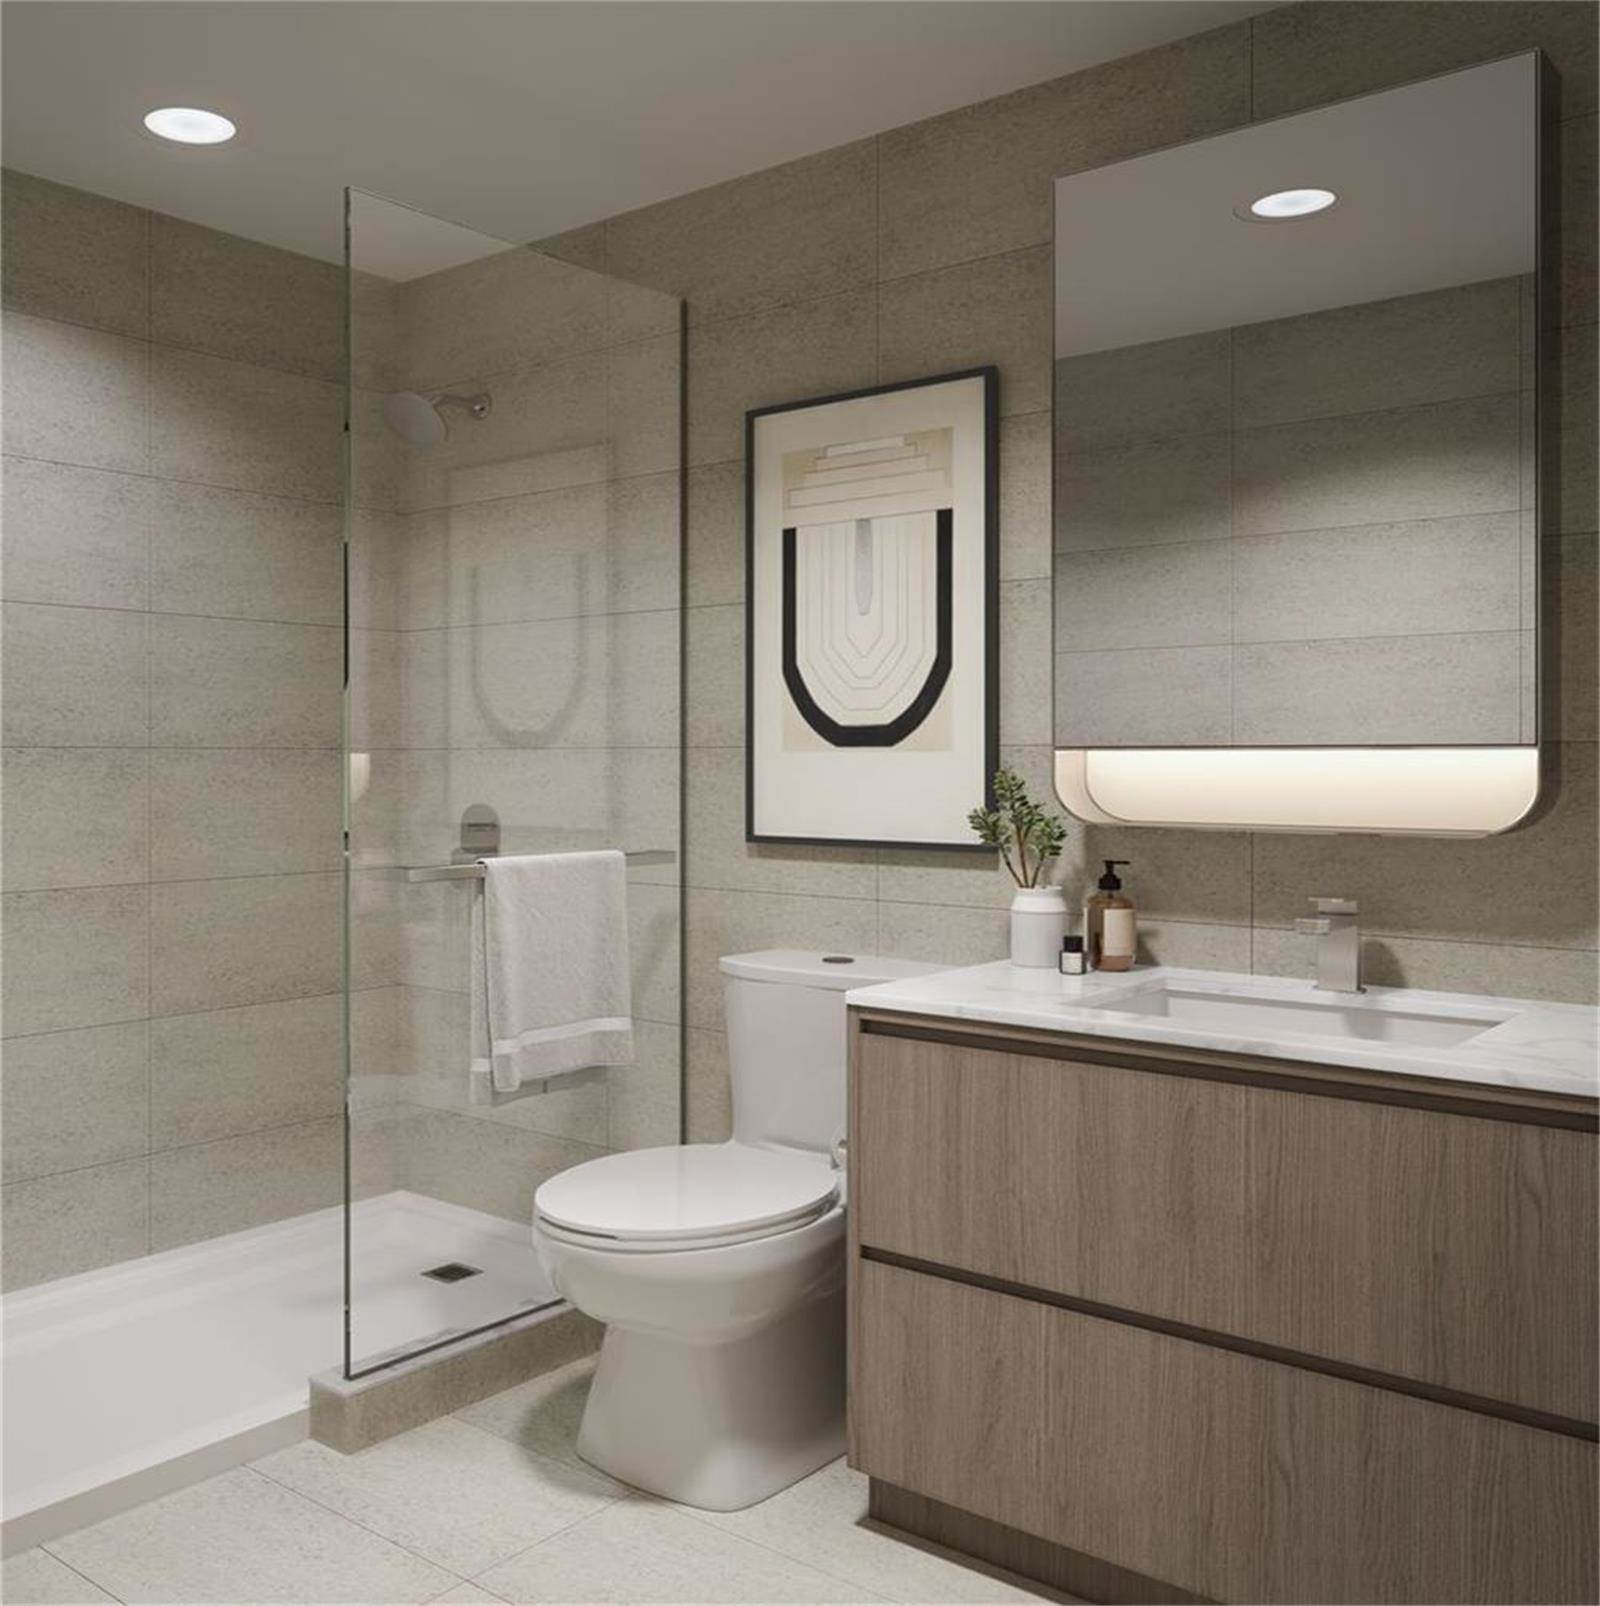 2020_09_11_12_17_45_8188yongecondos_trulifedevelopments_rendering_bathroom